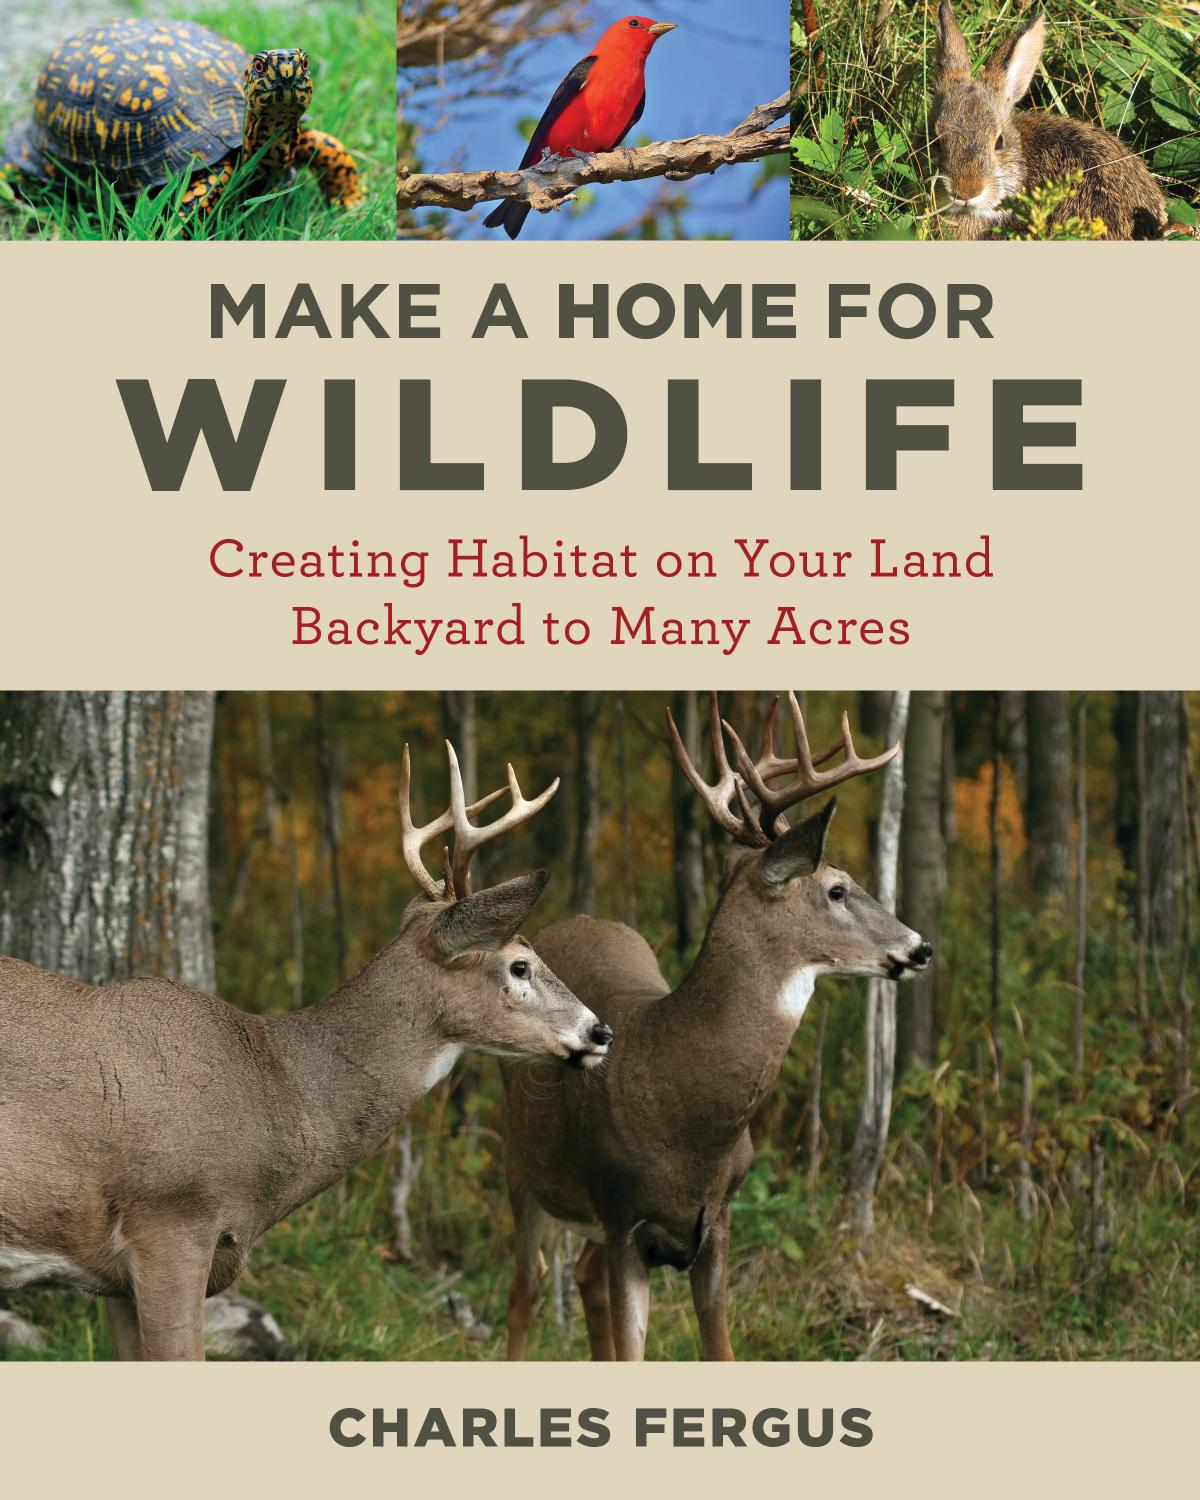 Make a Home for Wildlife: Creating Habitat on Your Land Backyard to Many Acres